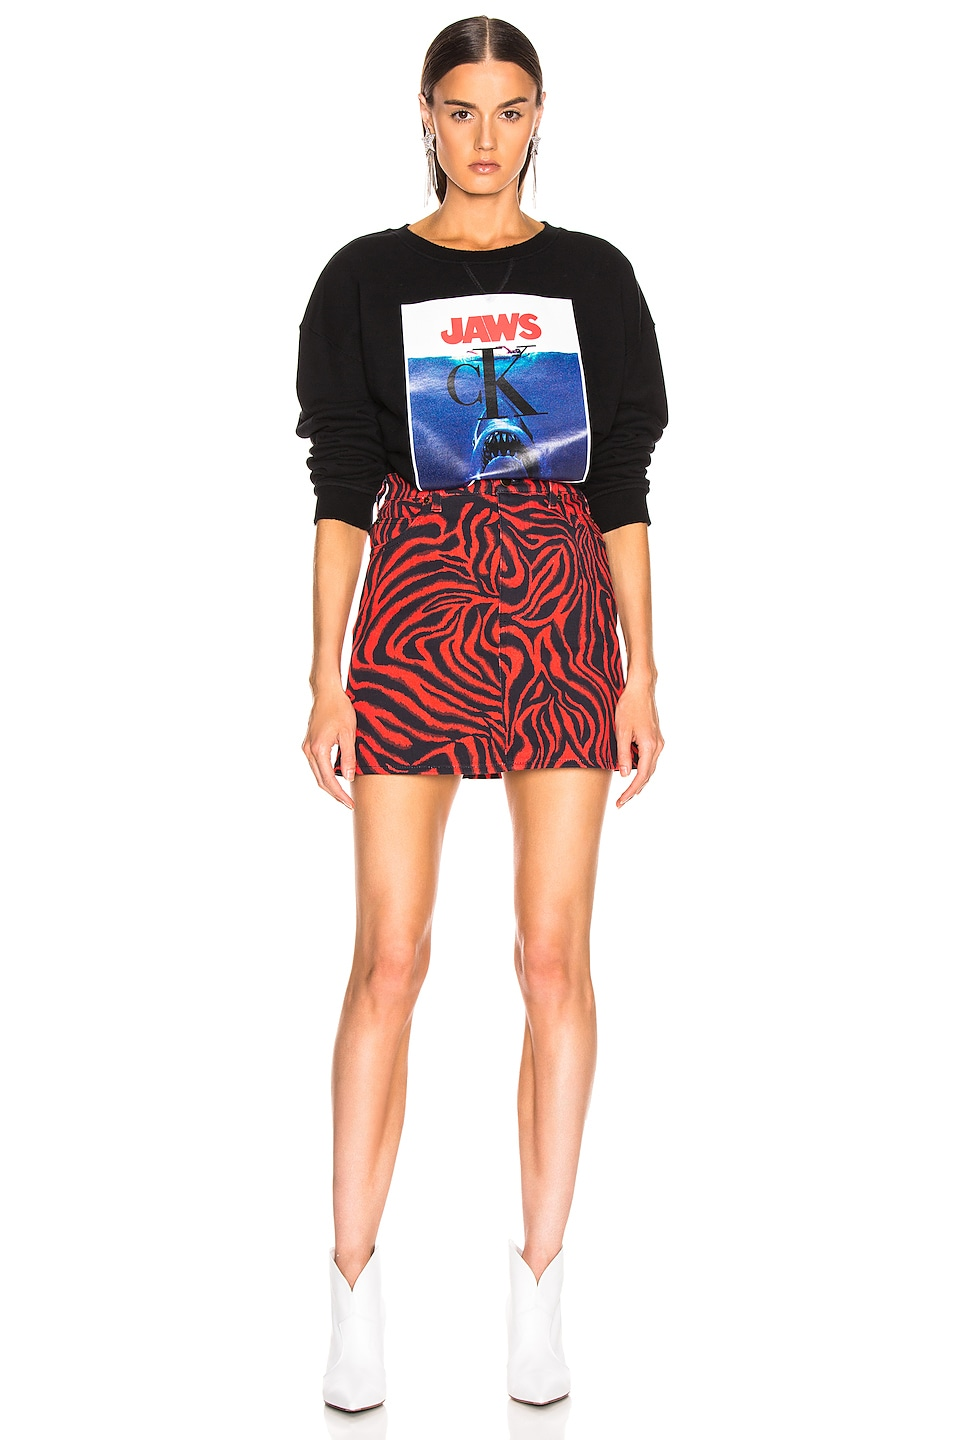 Image 5 of CALVIN KLEIN 205W39NYC Jaws Sweater in Black